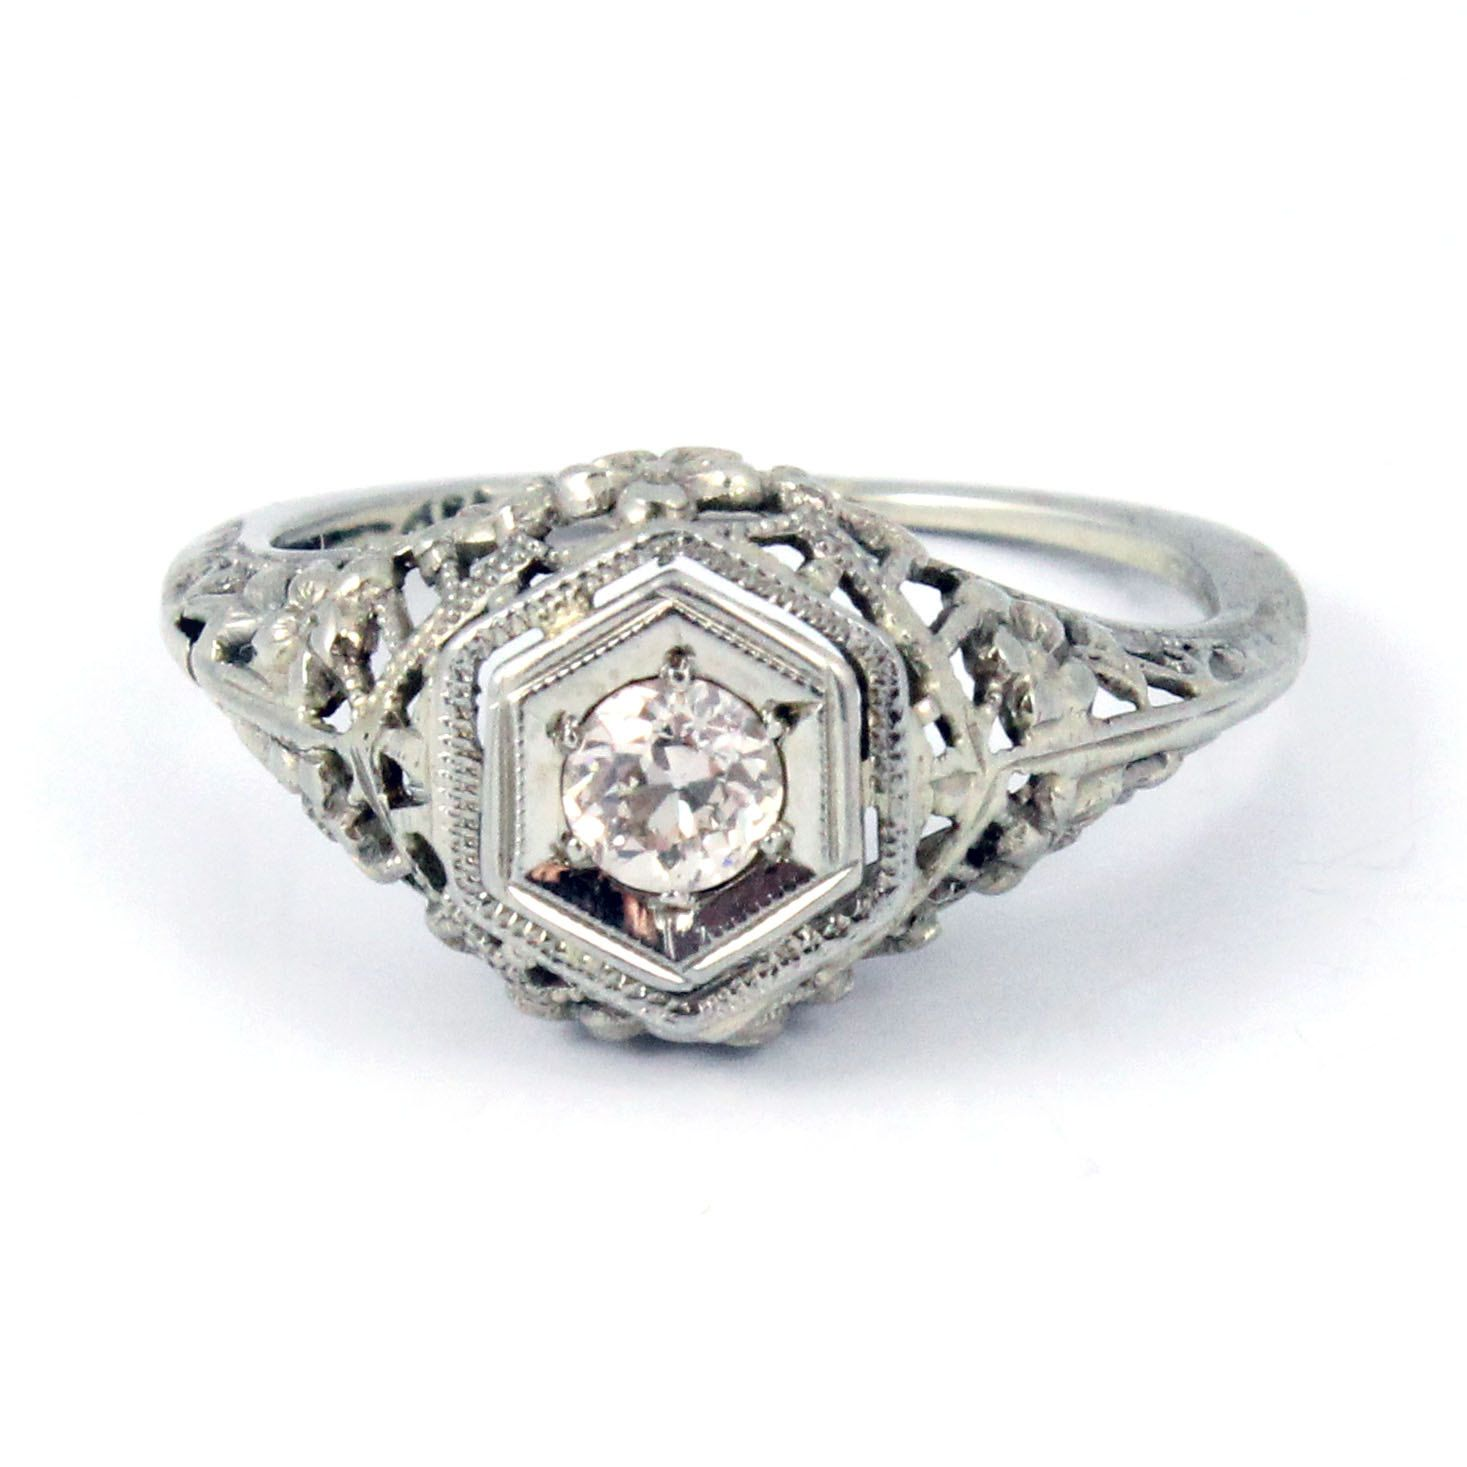 18k antique art deco 1920s diamond filigree engagement ring | to